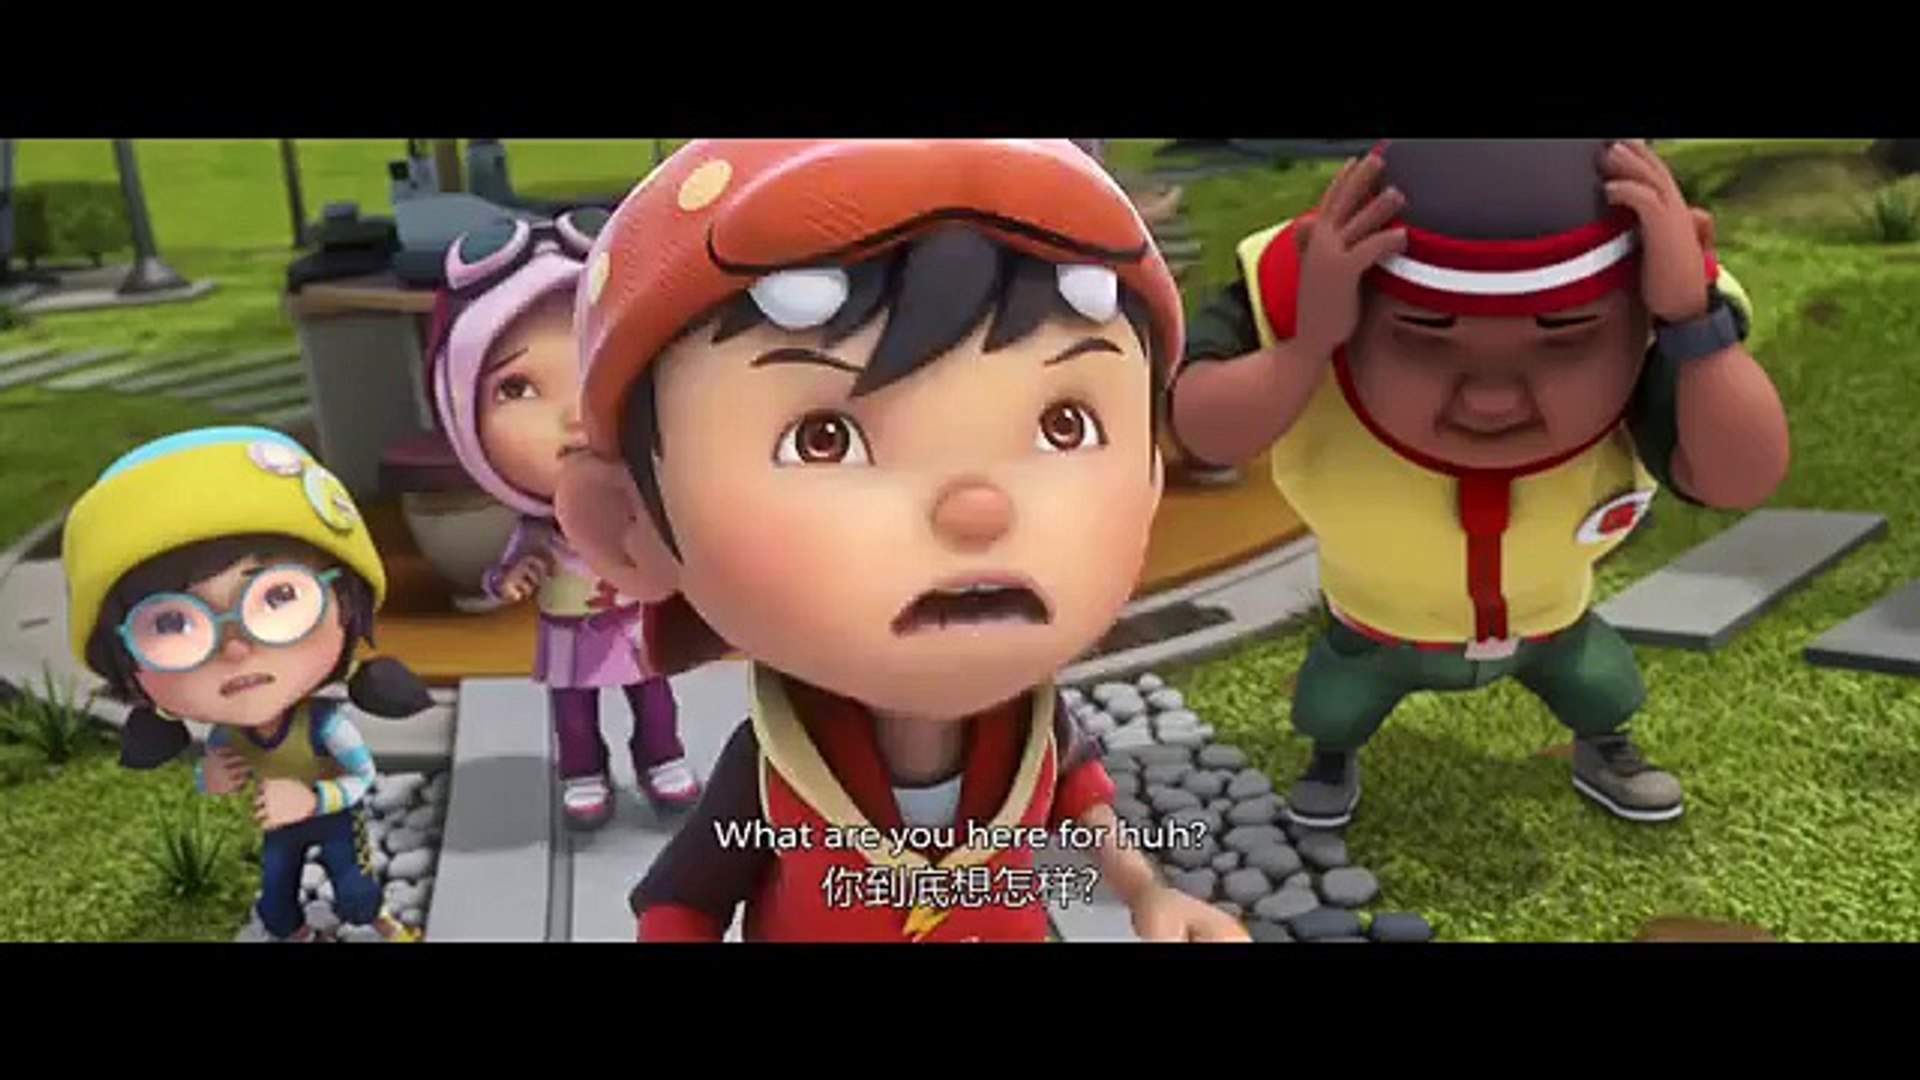 BoBoiBoy: The Movie Full Movie Streaming [Please Click Link In DESCRIPTION to Watching Full Movie]